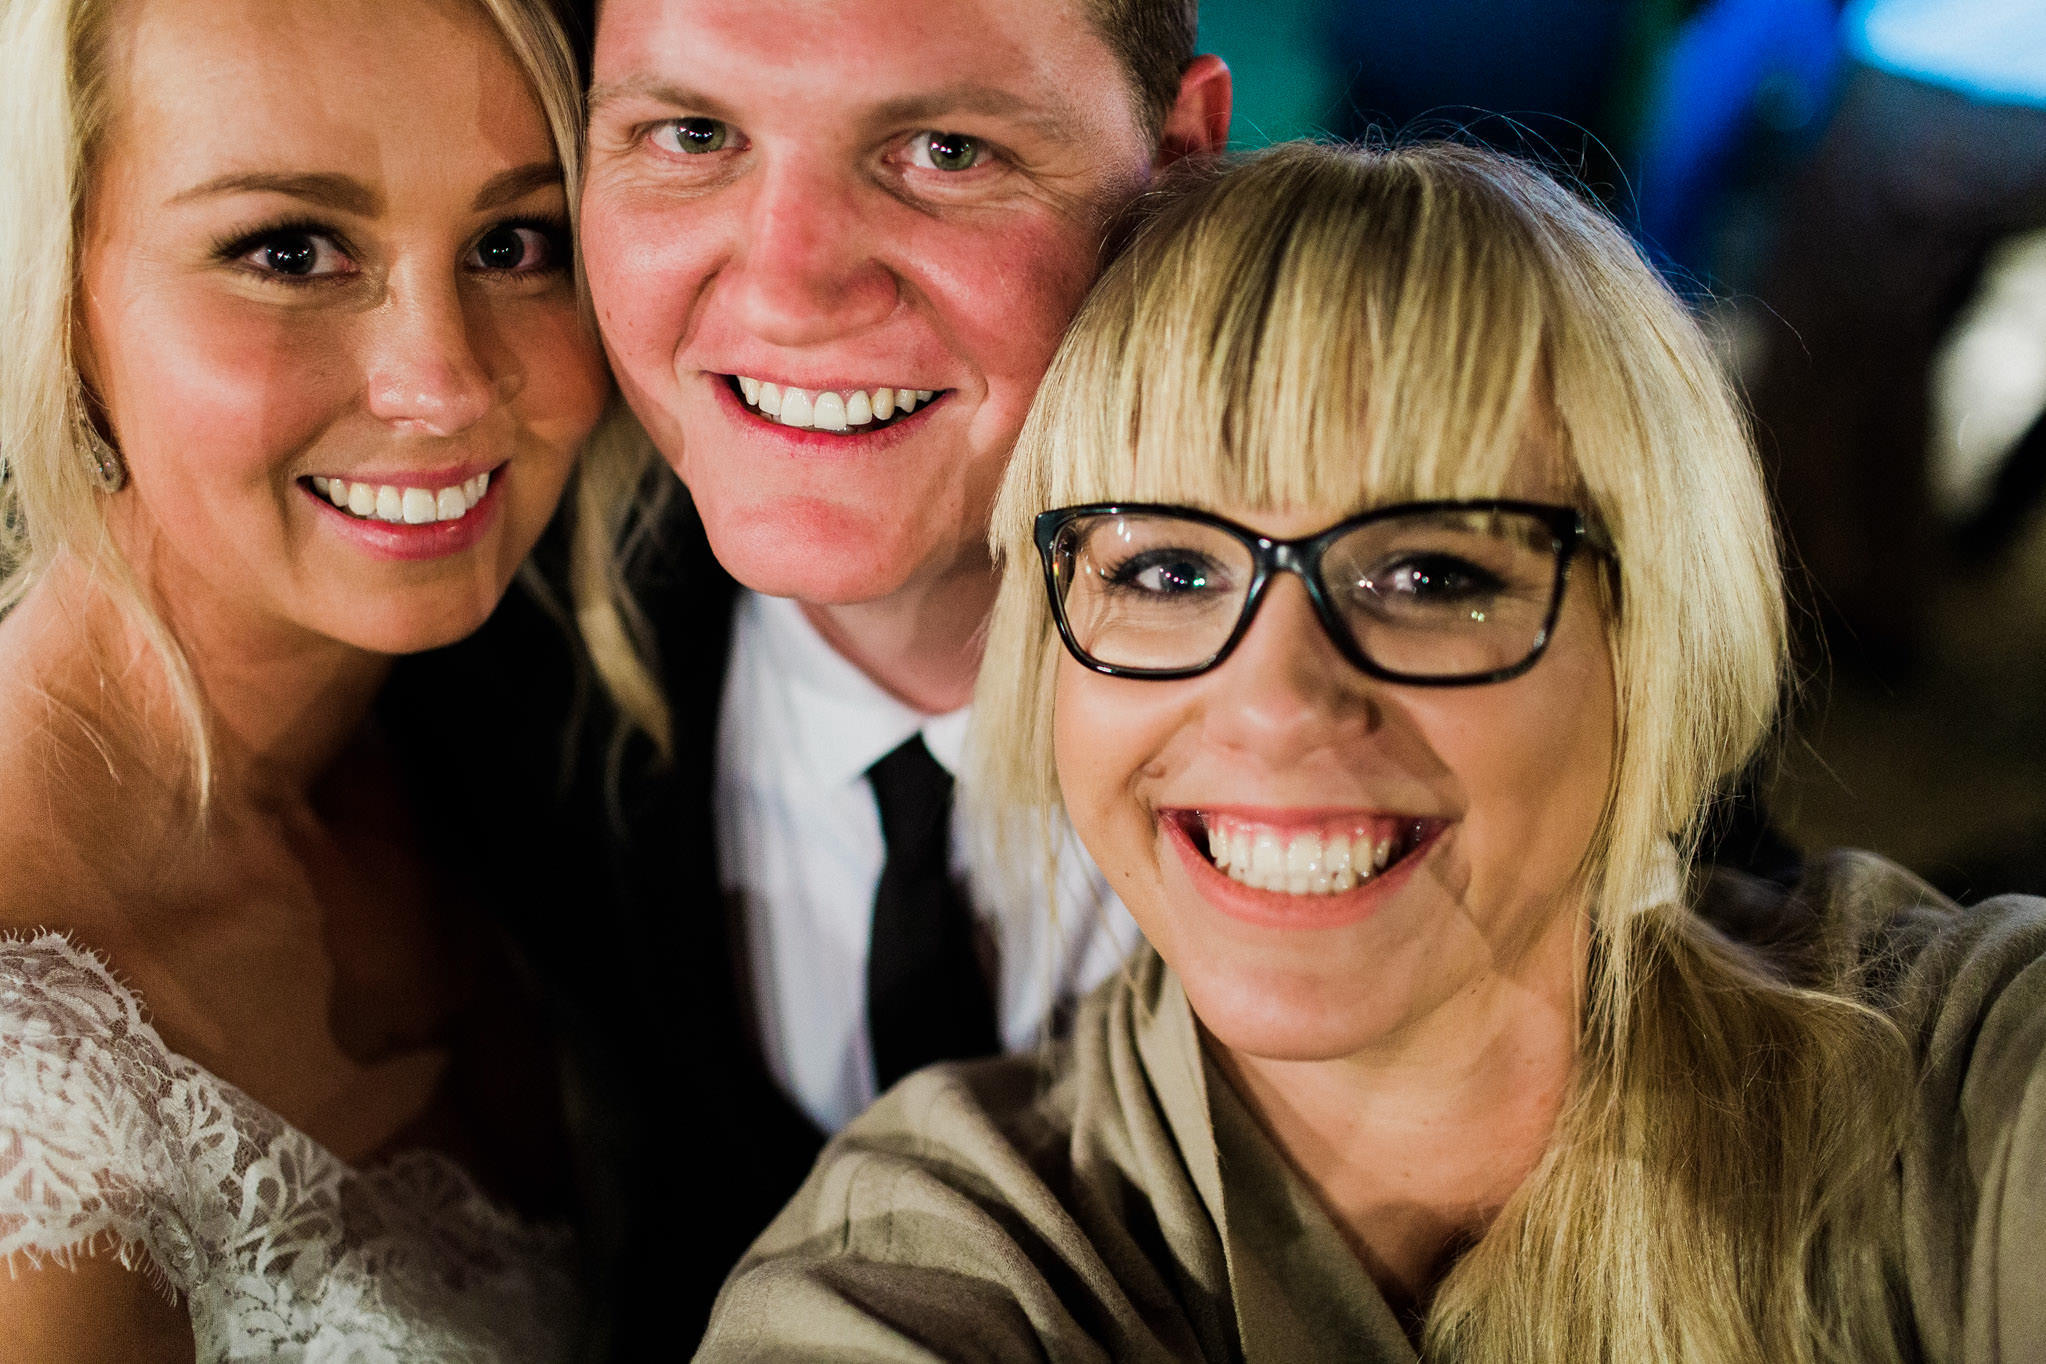 Wedding_Photographer_Newcastle_JoMatt-1170.jpg